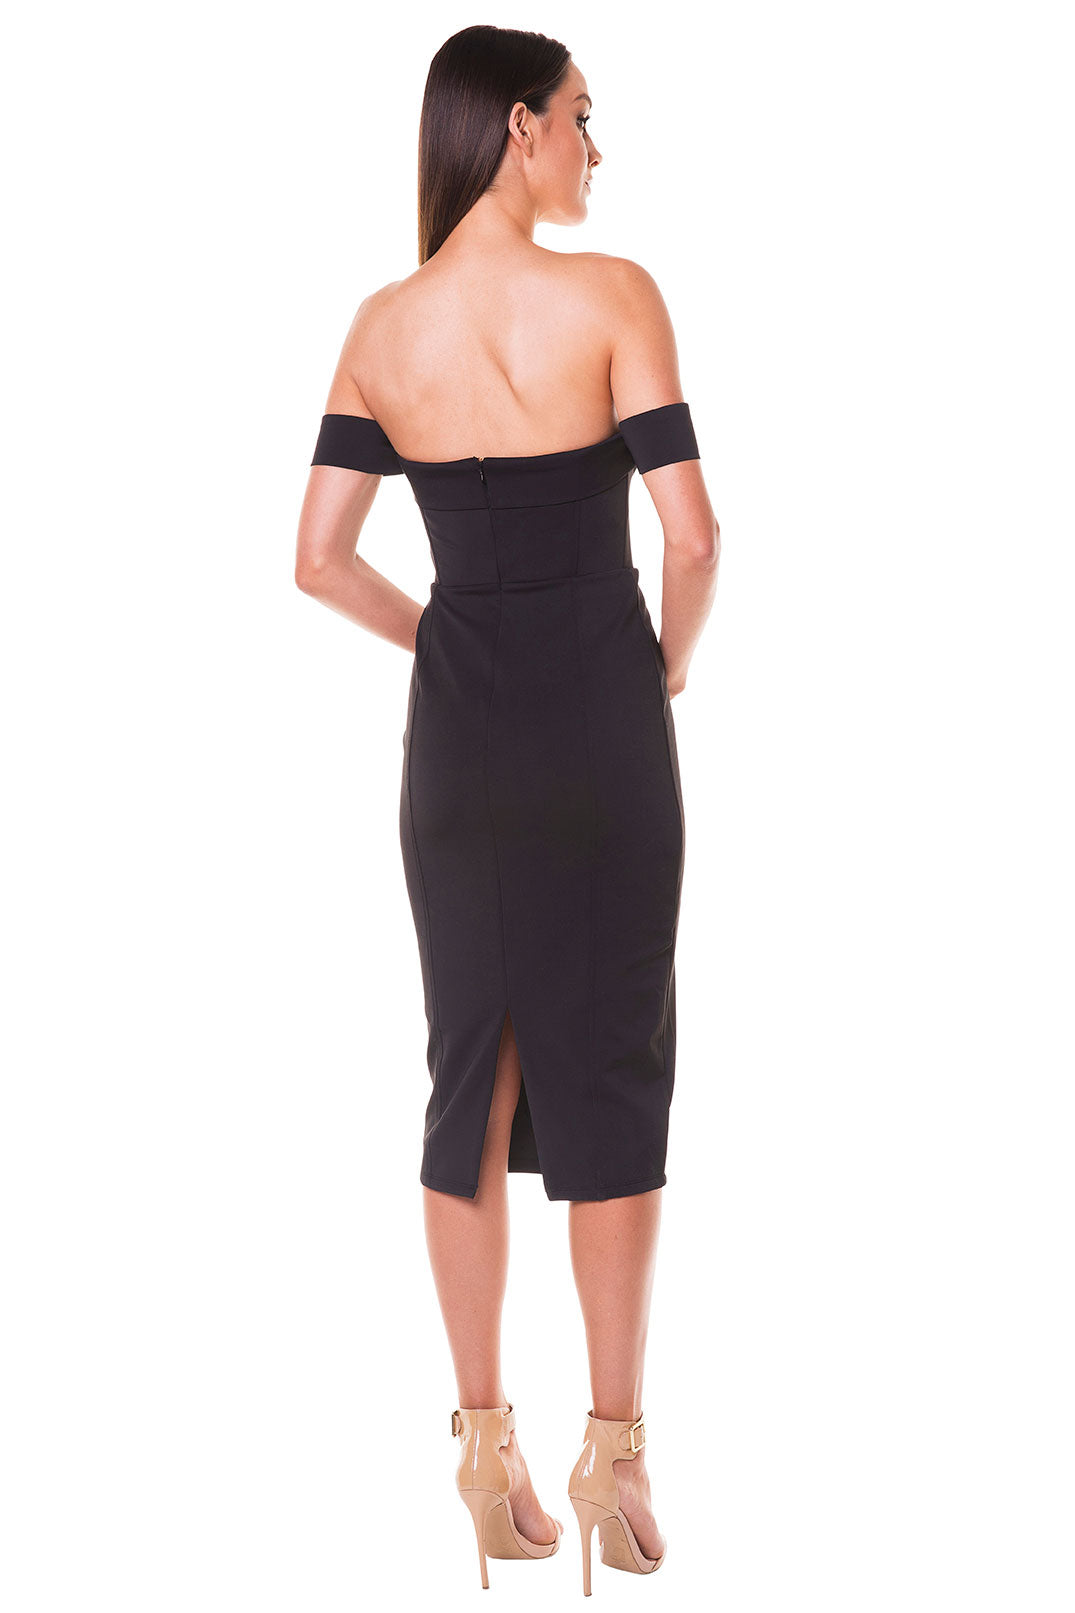 Cynthia Off-Shoulder Dress - Black [SAMPLE SALE]